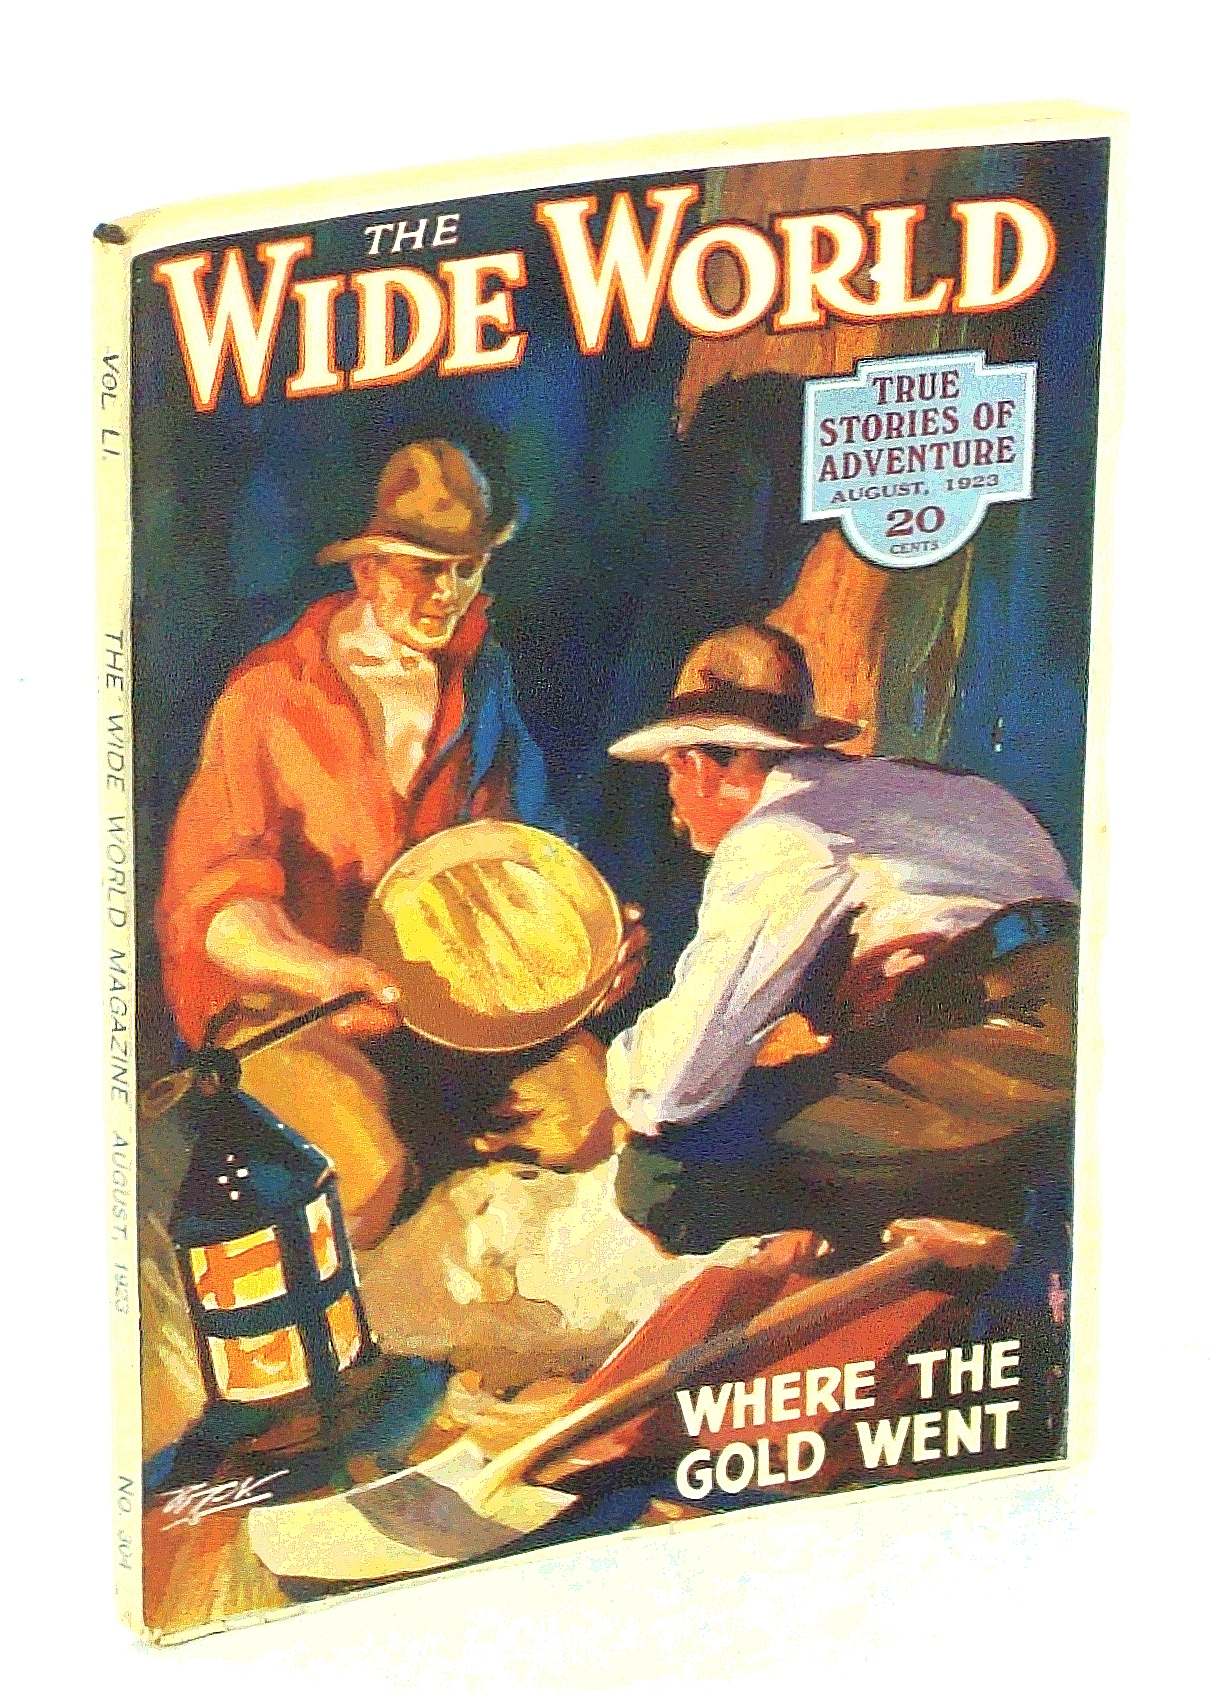 Image for The Wide World Magazine - True Stories of Adventure, August [Aug.] 1923, Vol. LI, No. 304: The Story of John Jewitt / The Children of the Wilderness